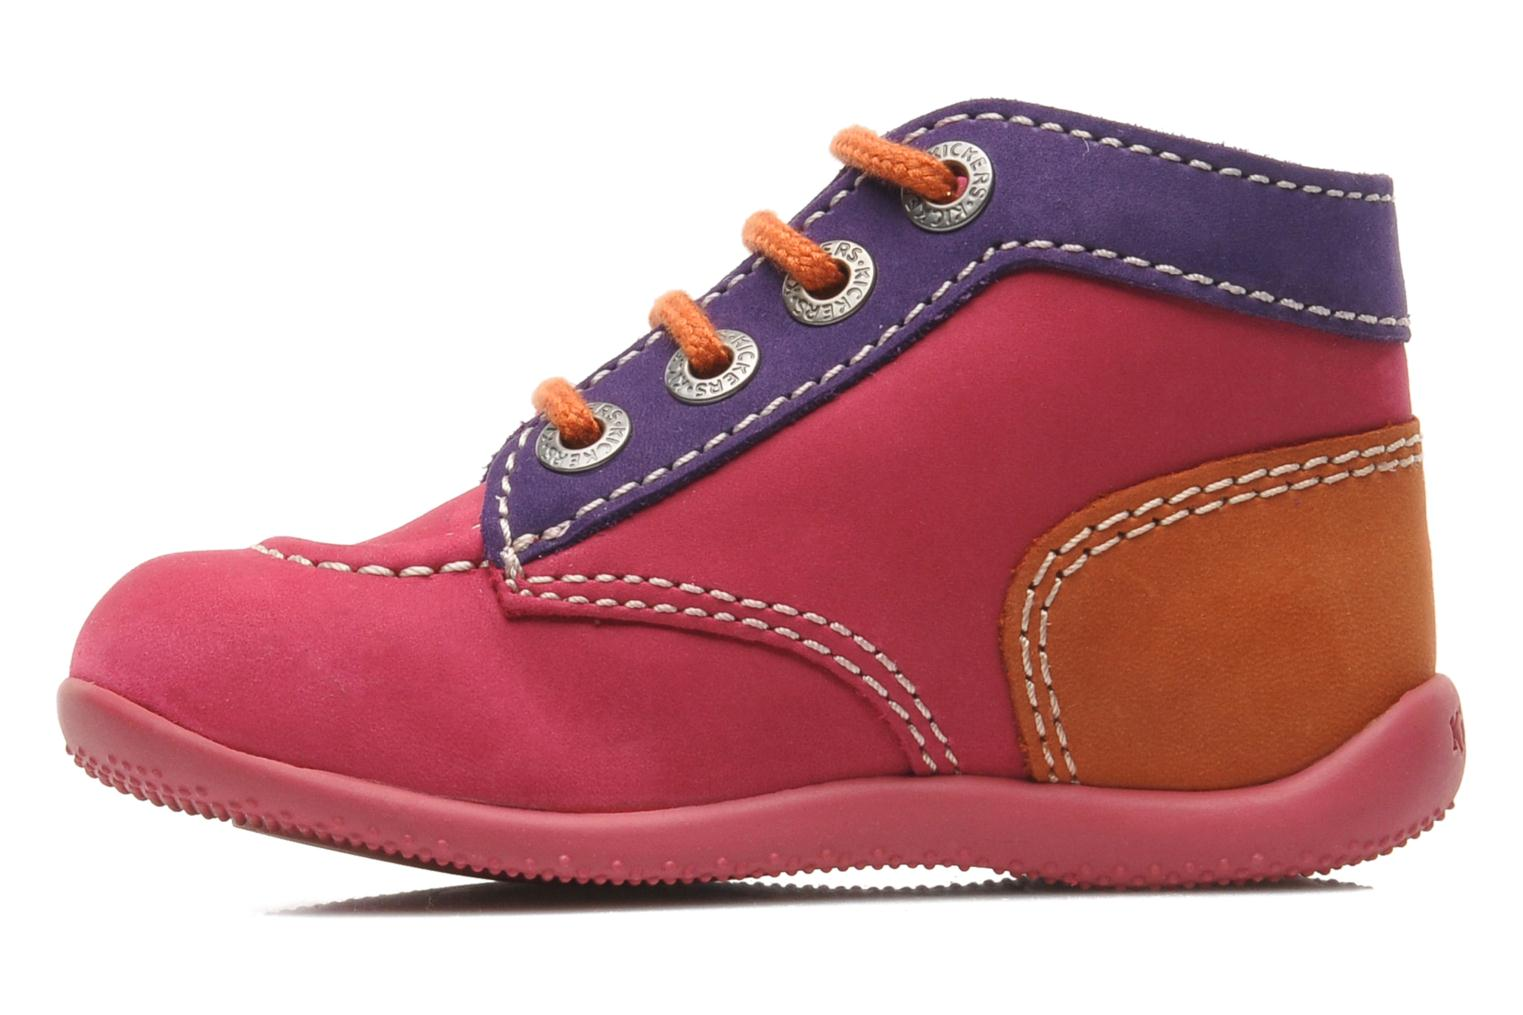 Bonbon FUCHSIA VIOLET ORANGE